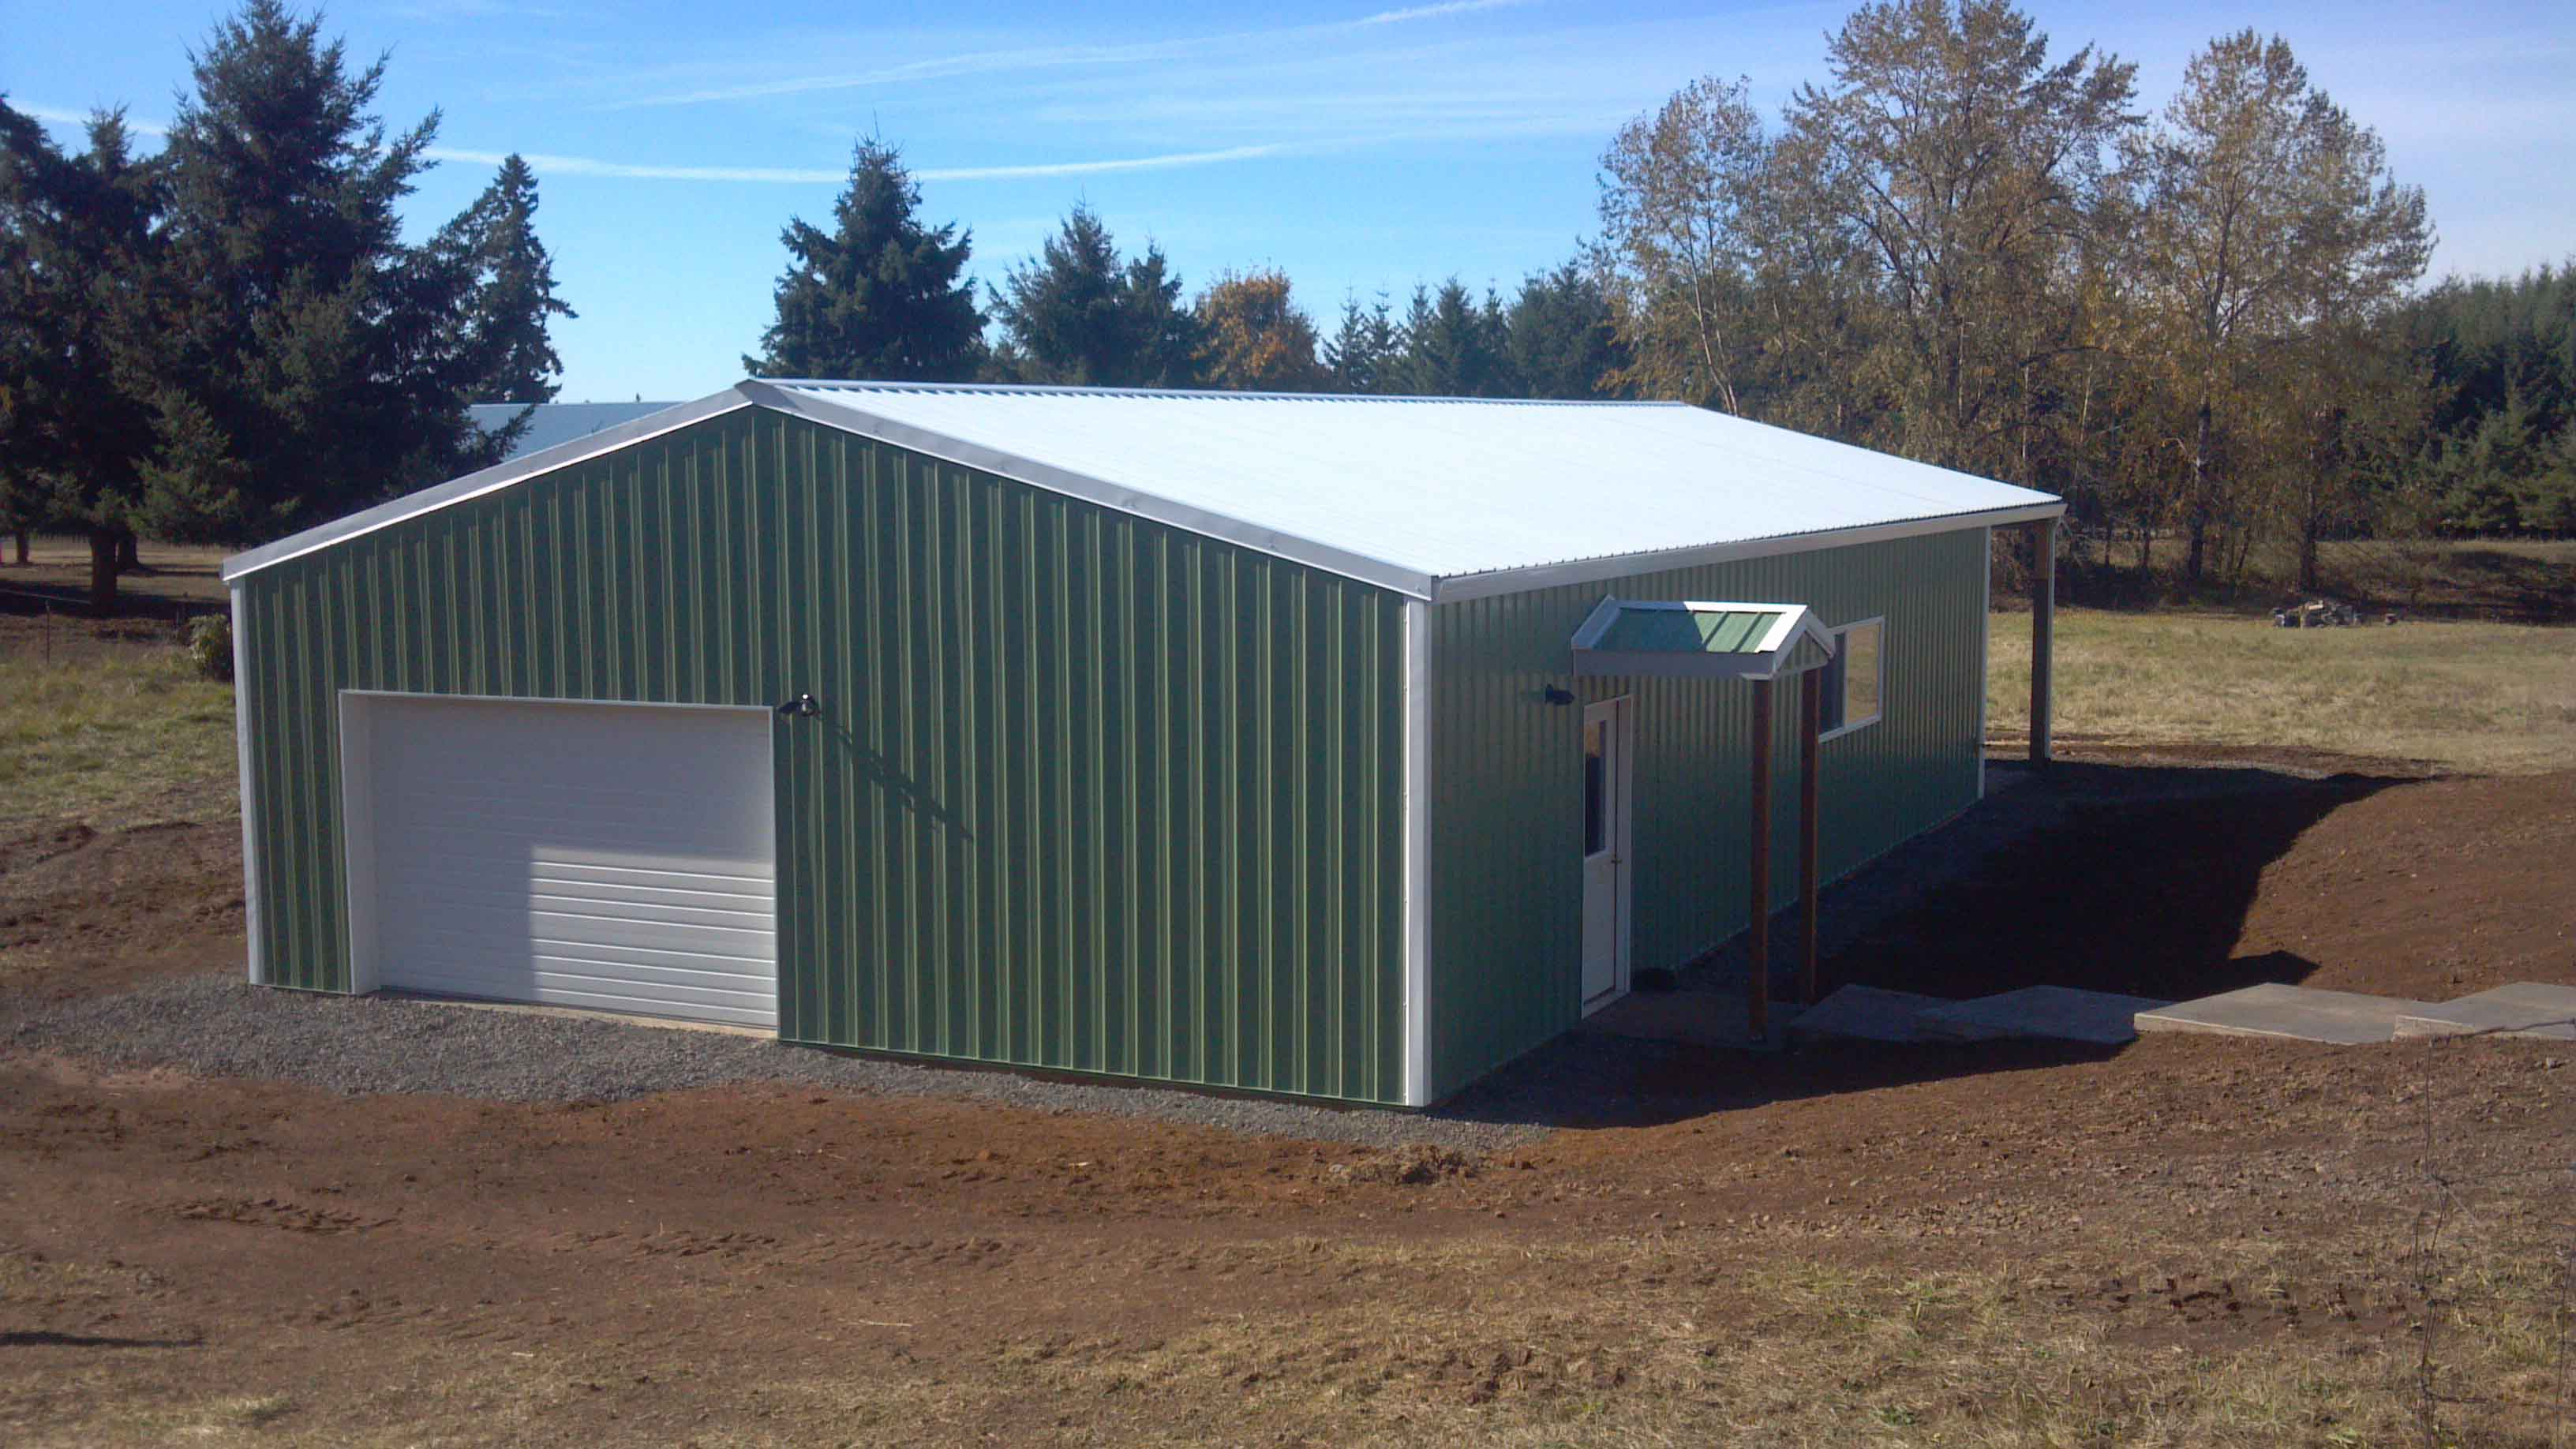 30'x60'x10' dog kennel